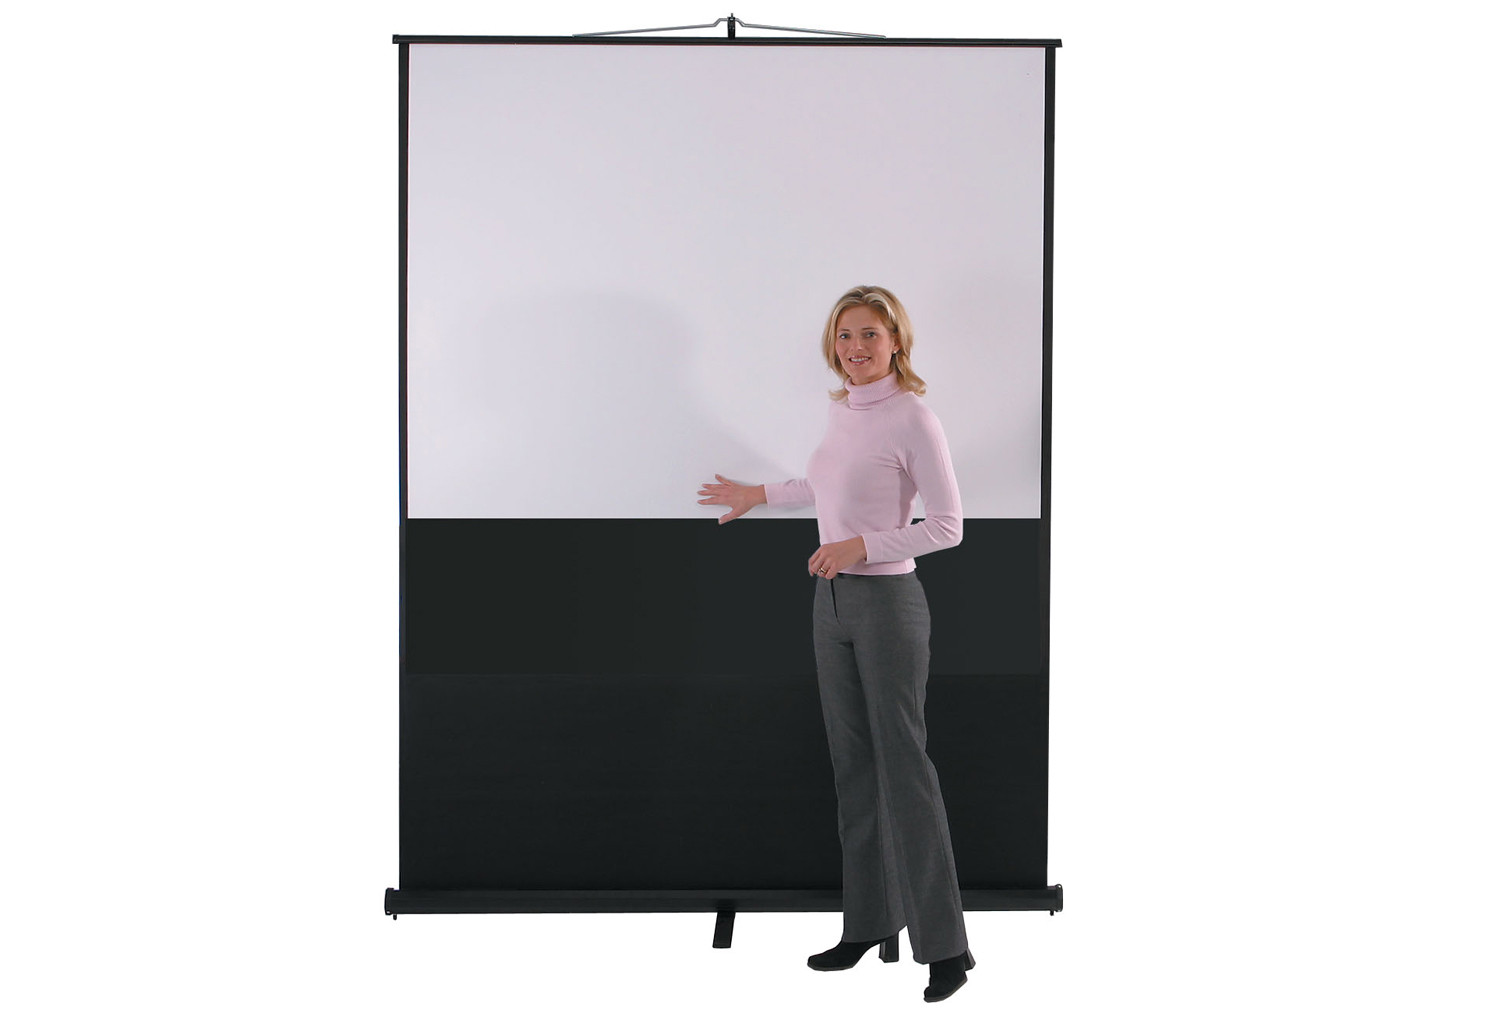 Eyeline Portable Projection Screen